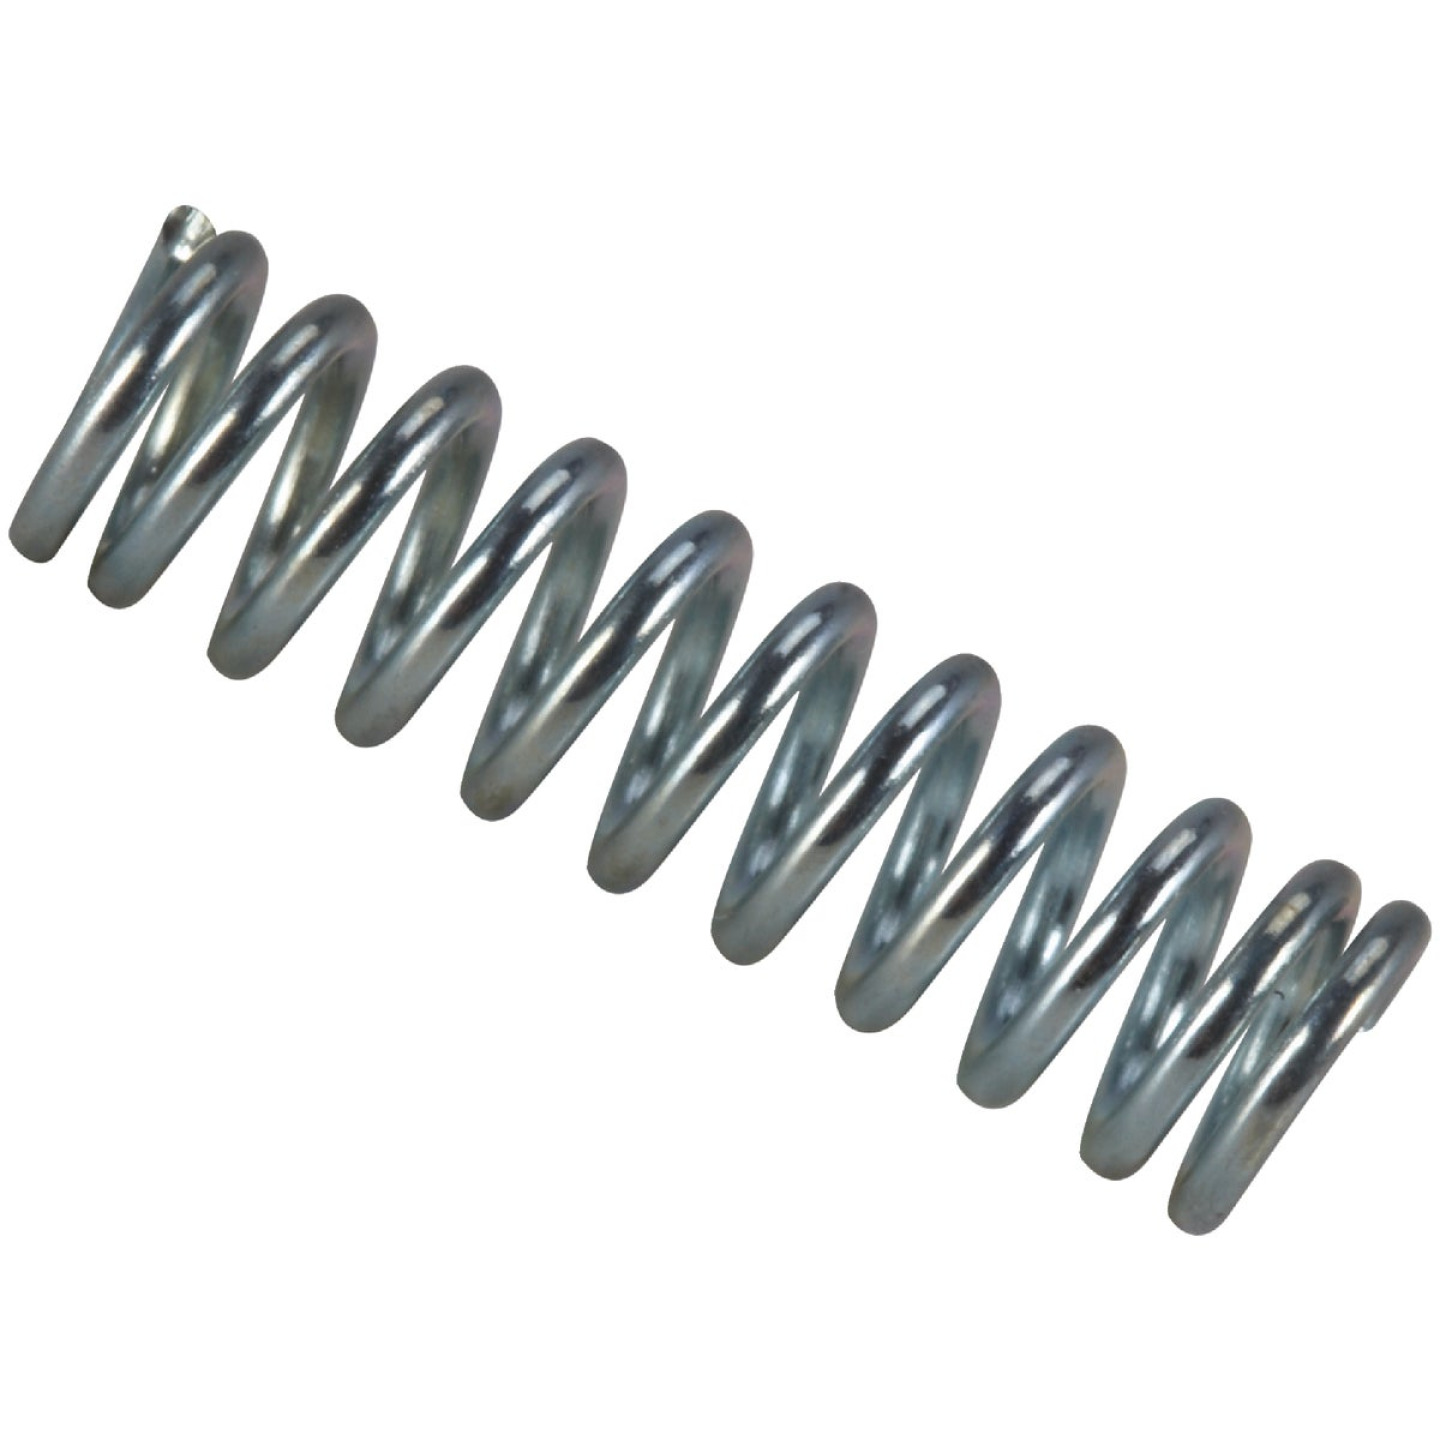 Century Spring 1-3/8 In. x 9/32 In. Compression Spring (4 Count) Image 1